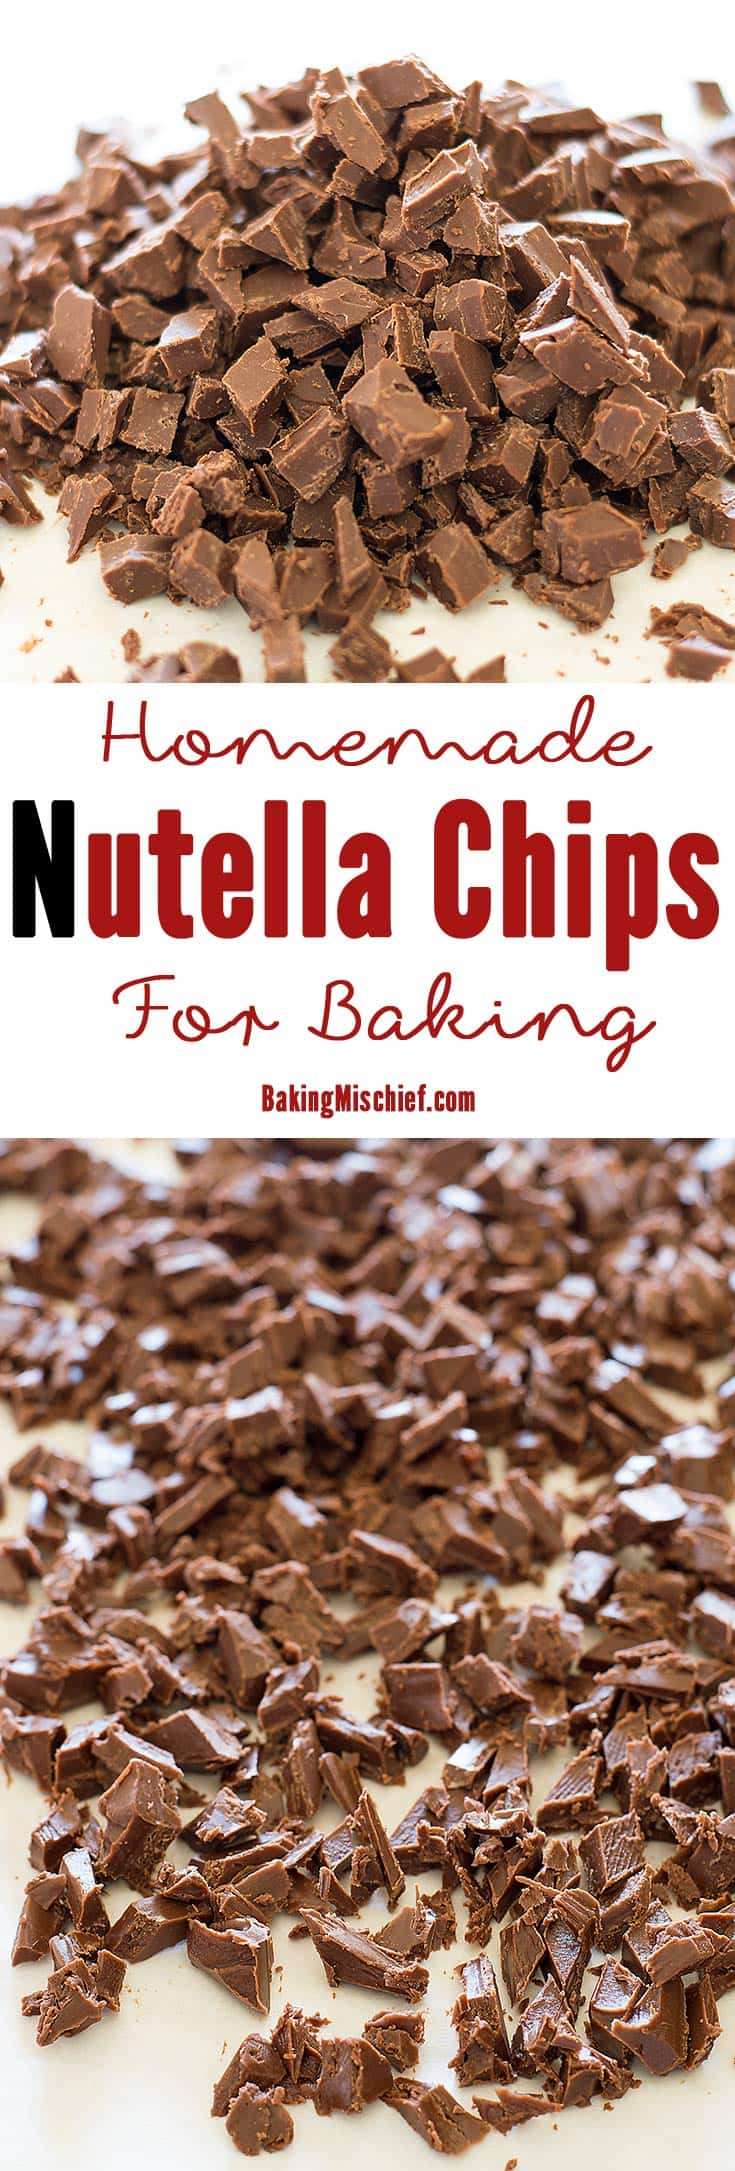 A simple and easy method for making homemade Nutella chips for baking. From BakingMischief.com